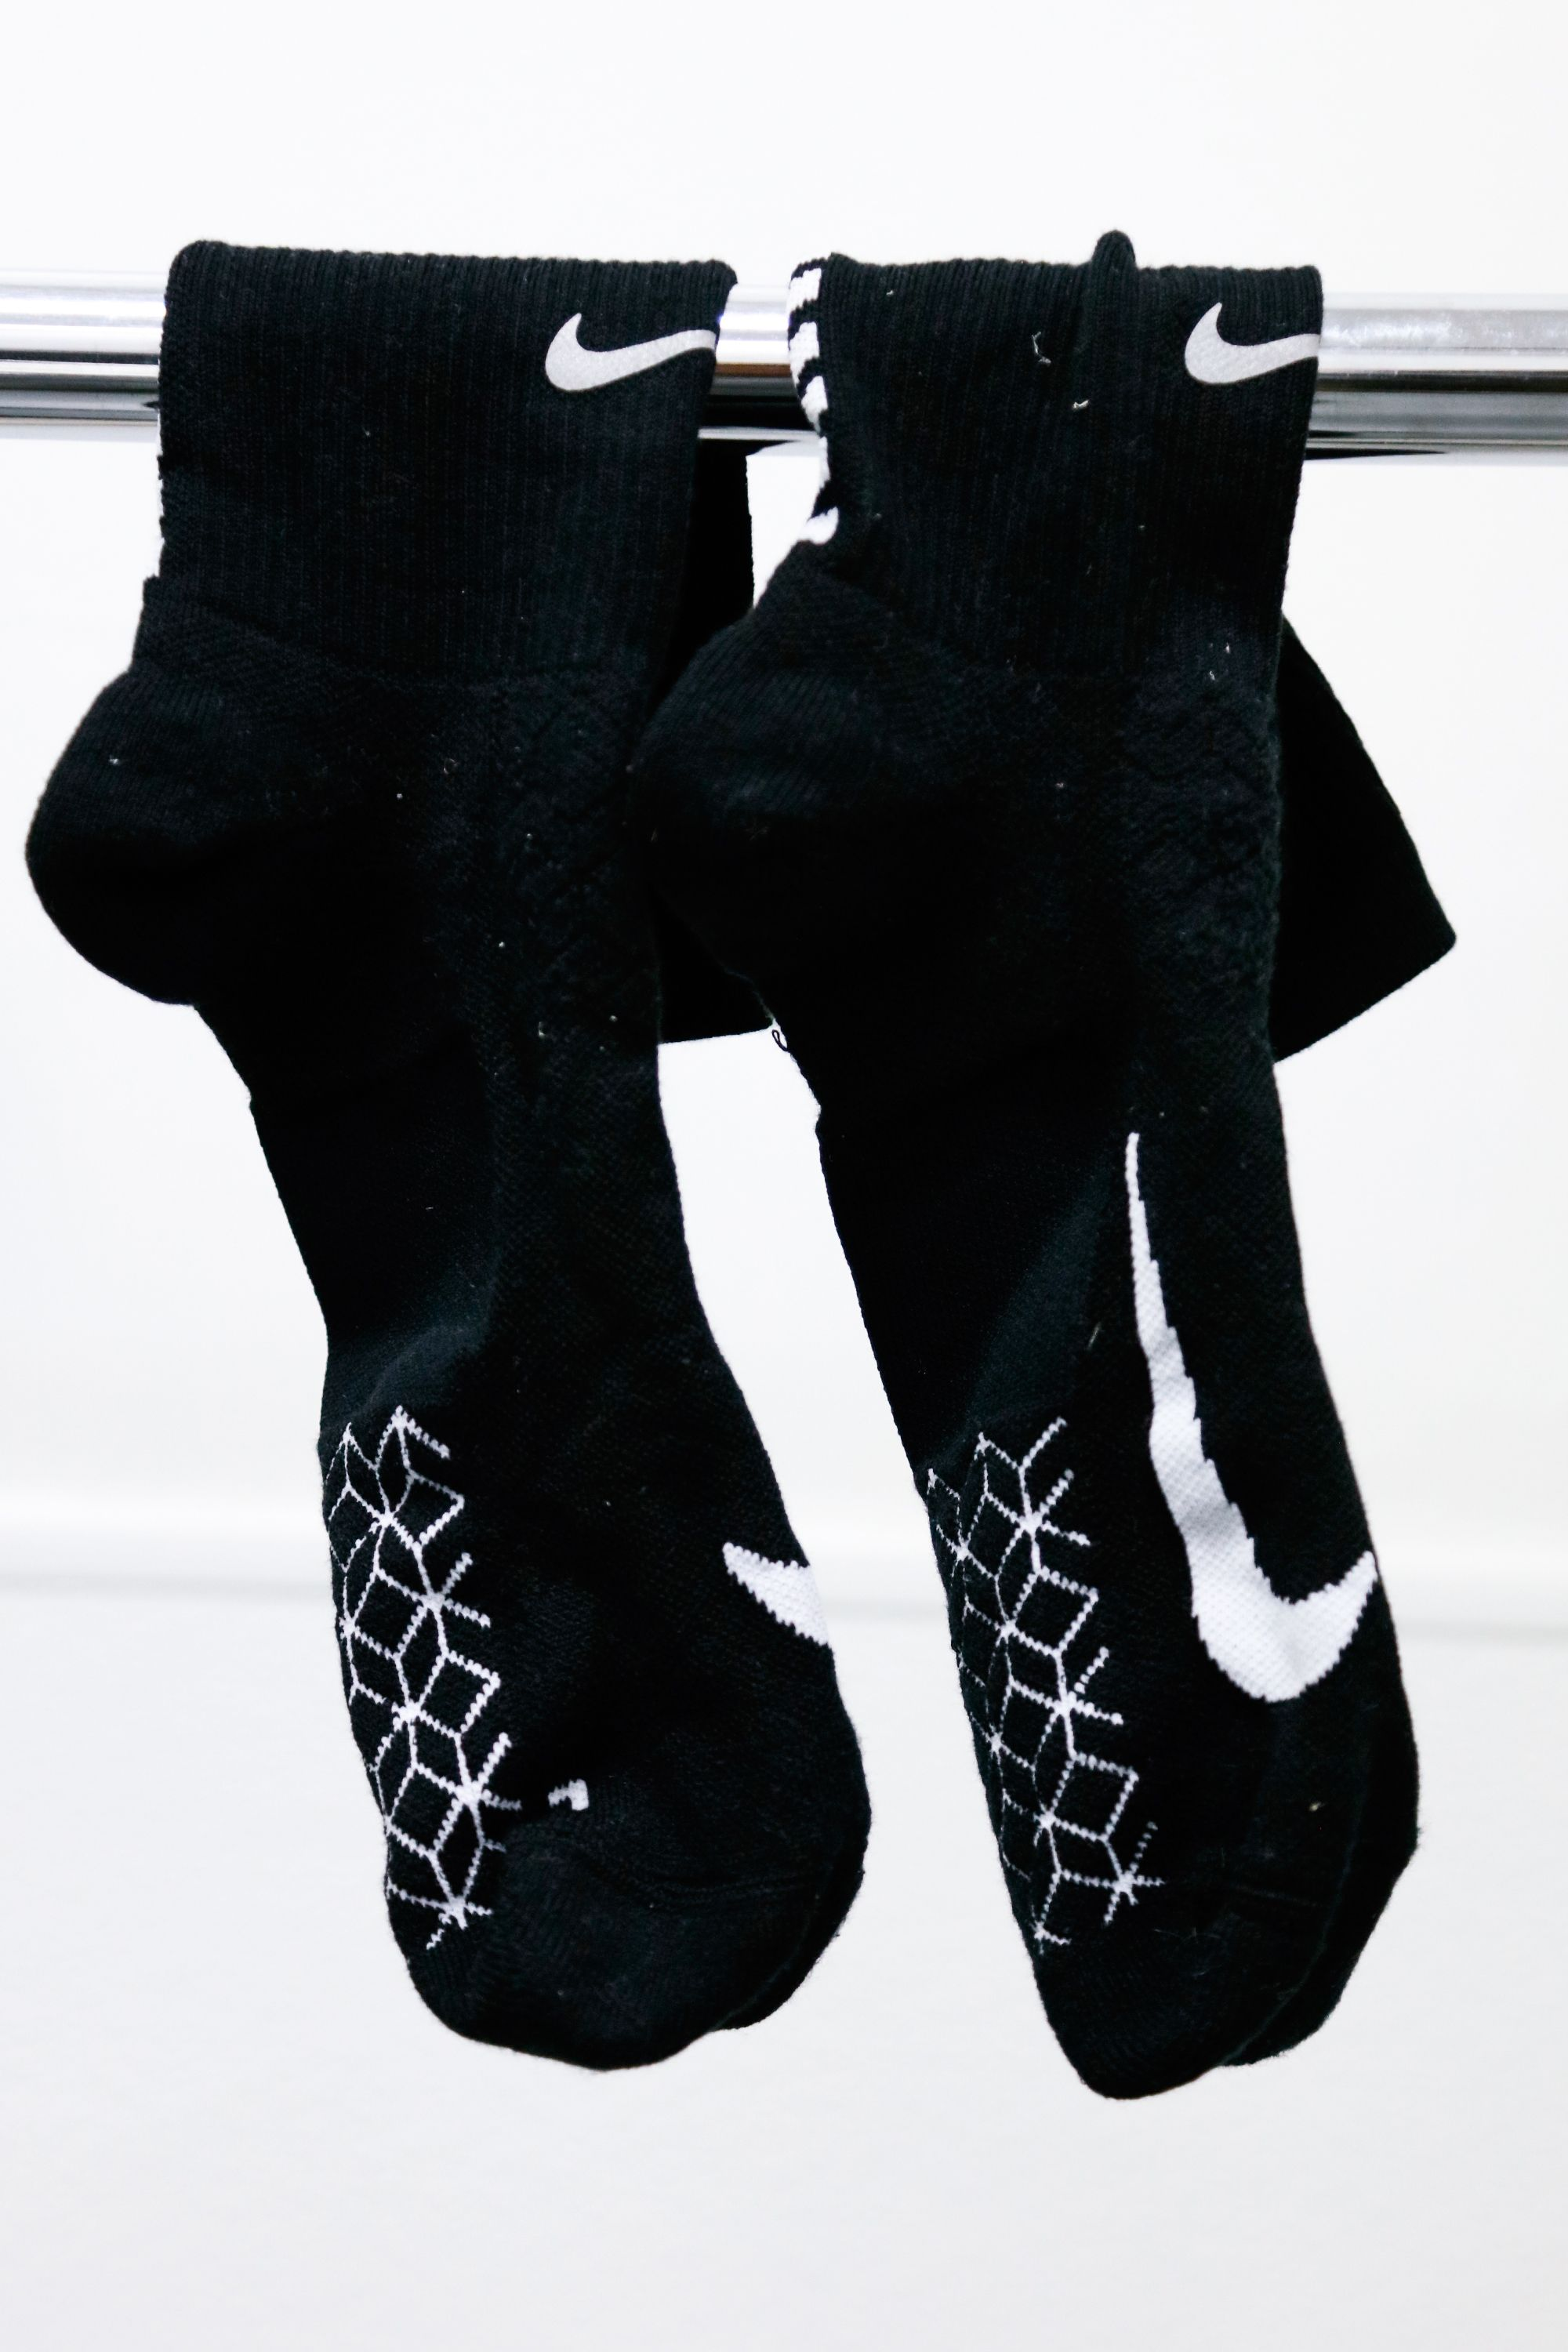 Nike Long Black Socks with Cube Graphic #A6251715